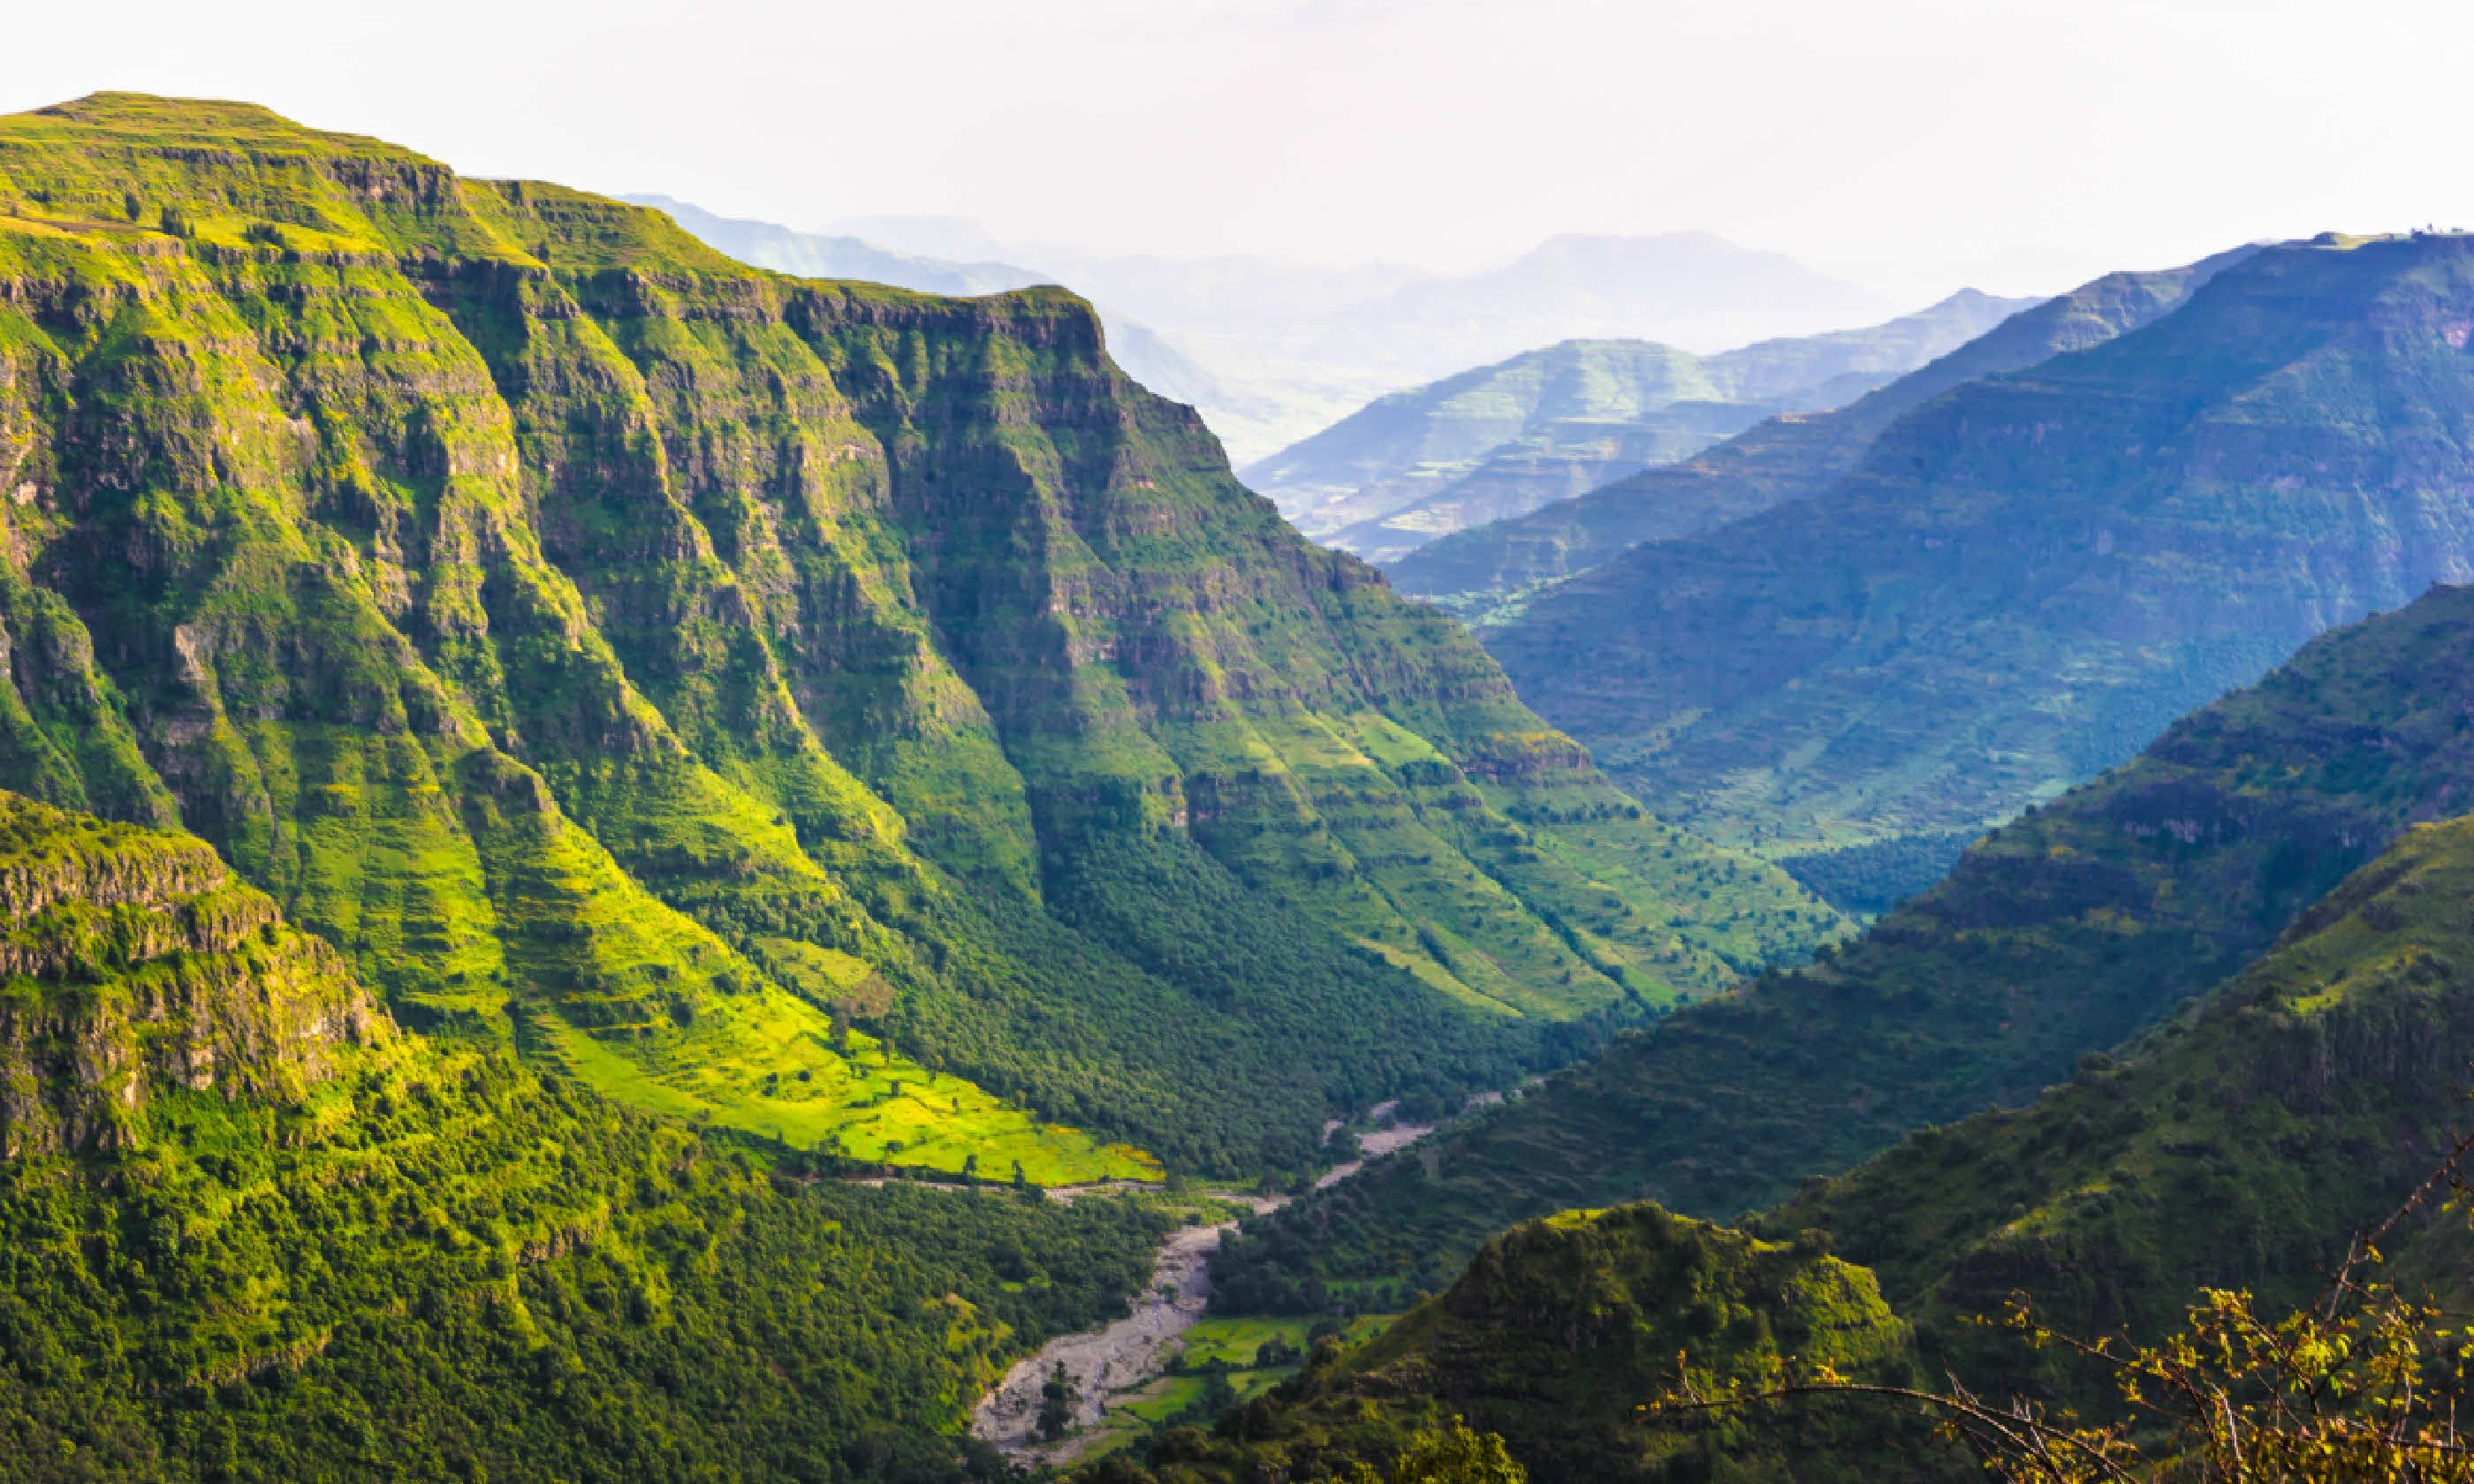 Valley among the mountains in Ethiopia (Shutterstock)